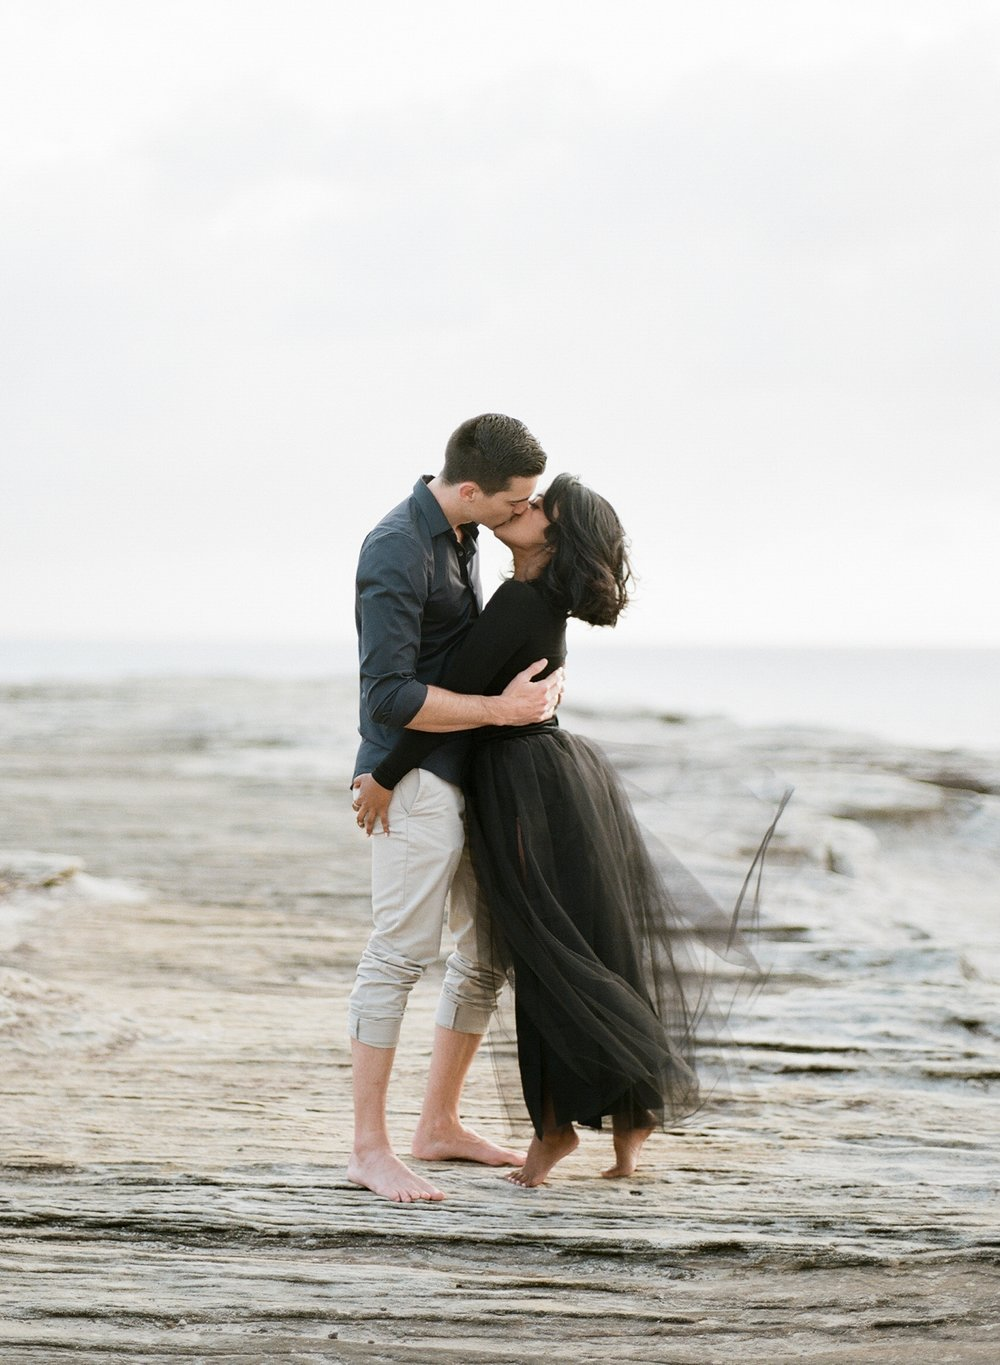 Coastal Sydney couples session by Mr Edwards Photography_0737_1148.jpg